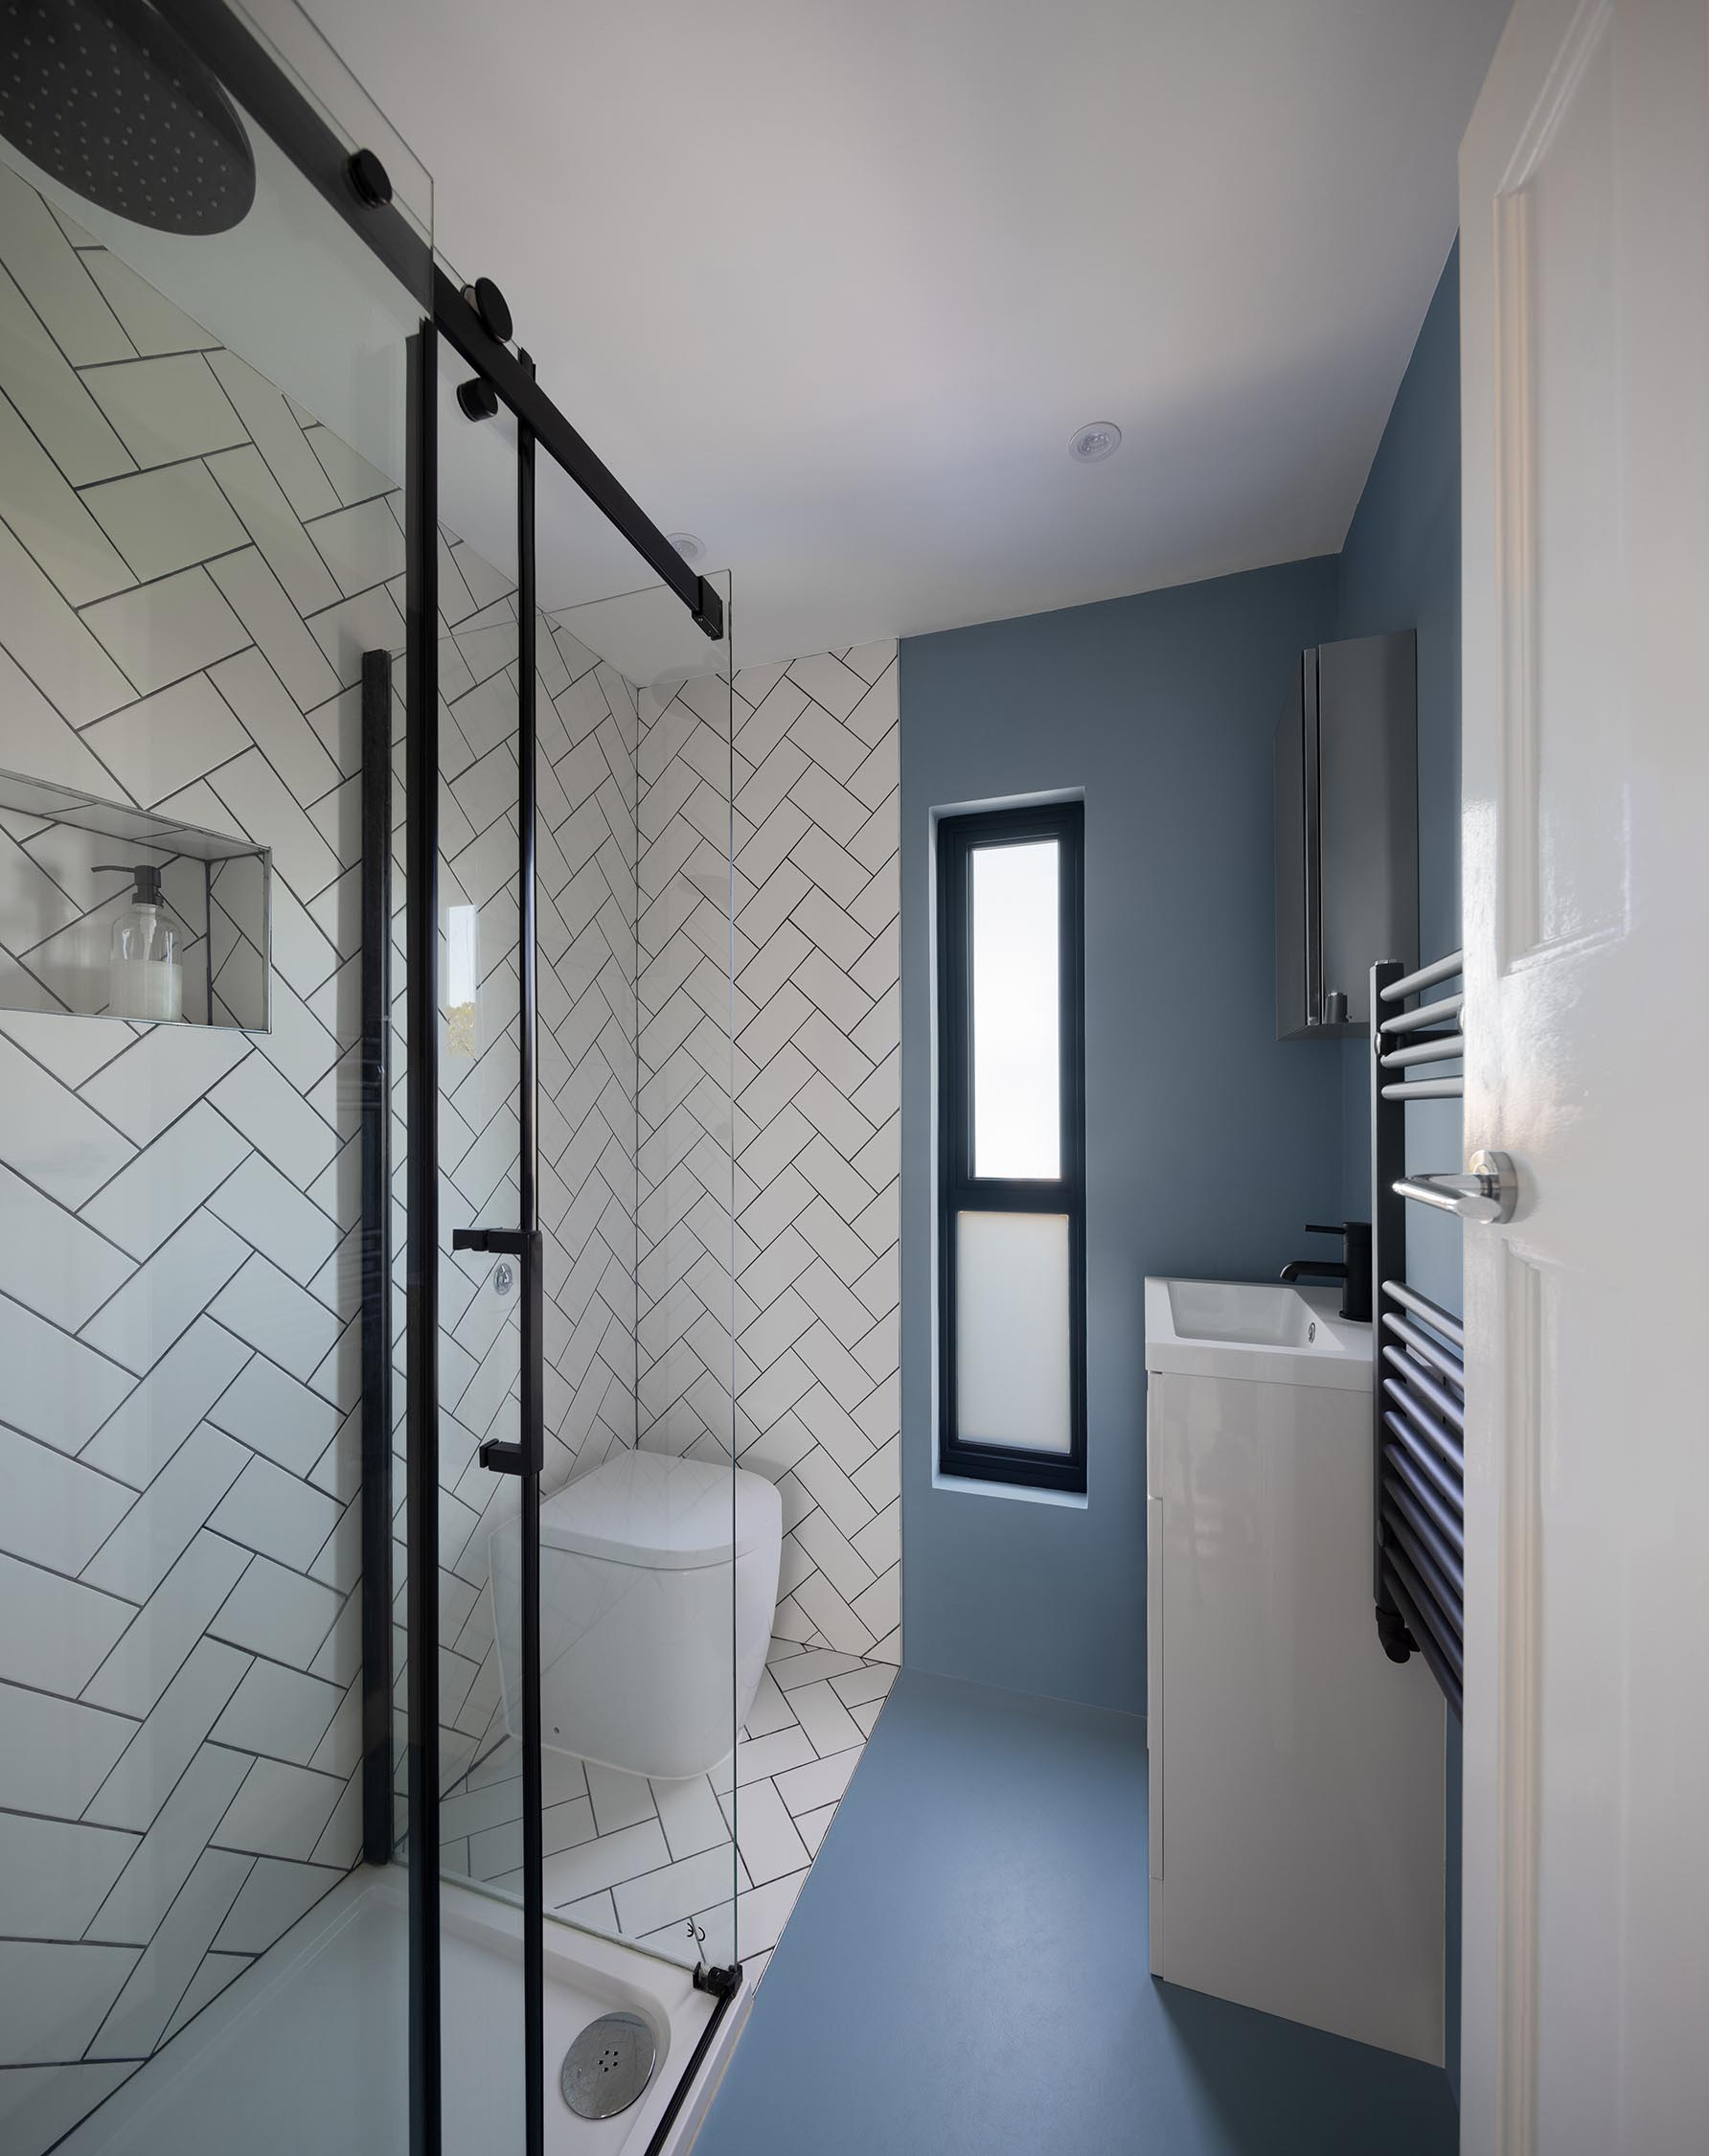 A modern bathroom with white tiles in a herringbone pattern, black hardware, and narrow vanity.